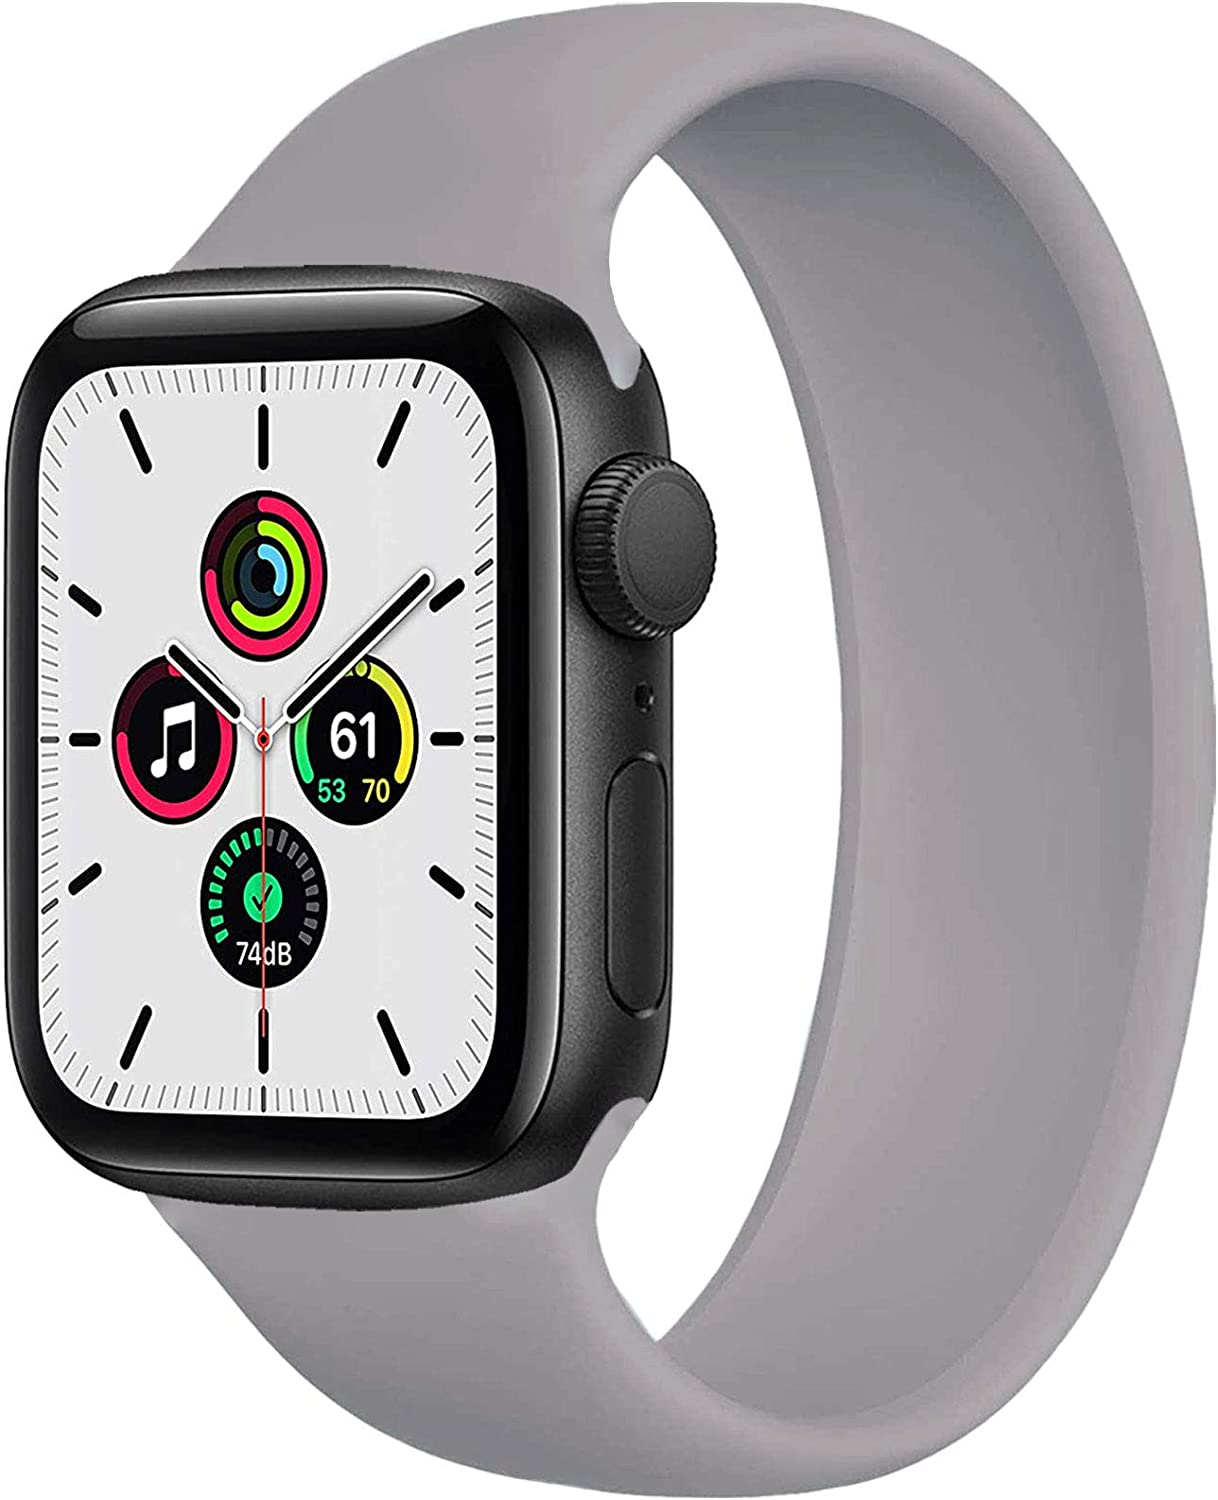 WAAILU Solo Loop Band Compatible with Apple Watch SE Series 6 Bands 38mm 40mm 42mm 44mm, Replacement Band, Stretchable Soft Silicone with no Clasps or Buckles, Compatible for iWatch Series5/4/3/2/1